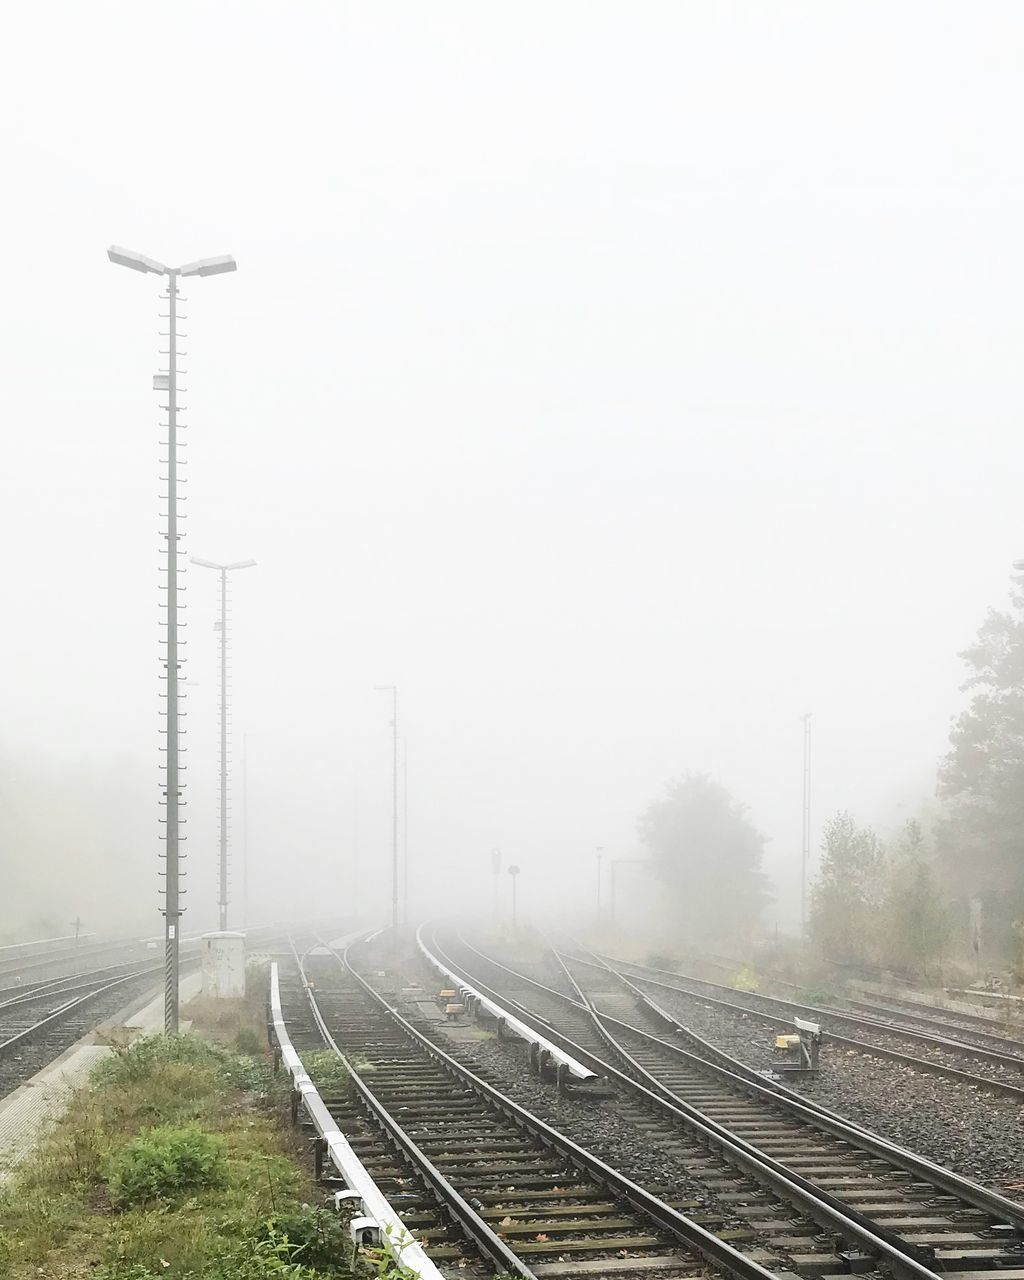 HIGH ANGLE VIEW OF RAILROAD TRACKS AGAINST SKY DURING FOGGY WEATHER